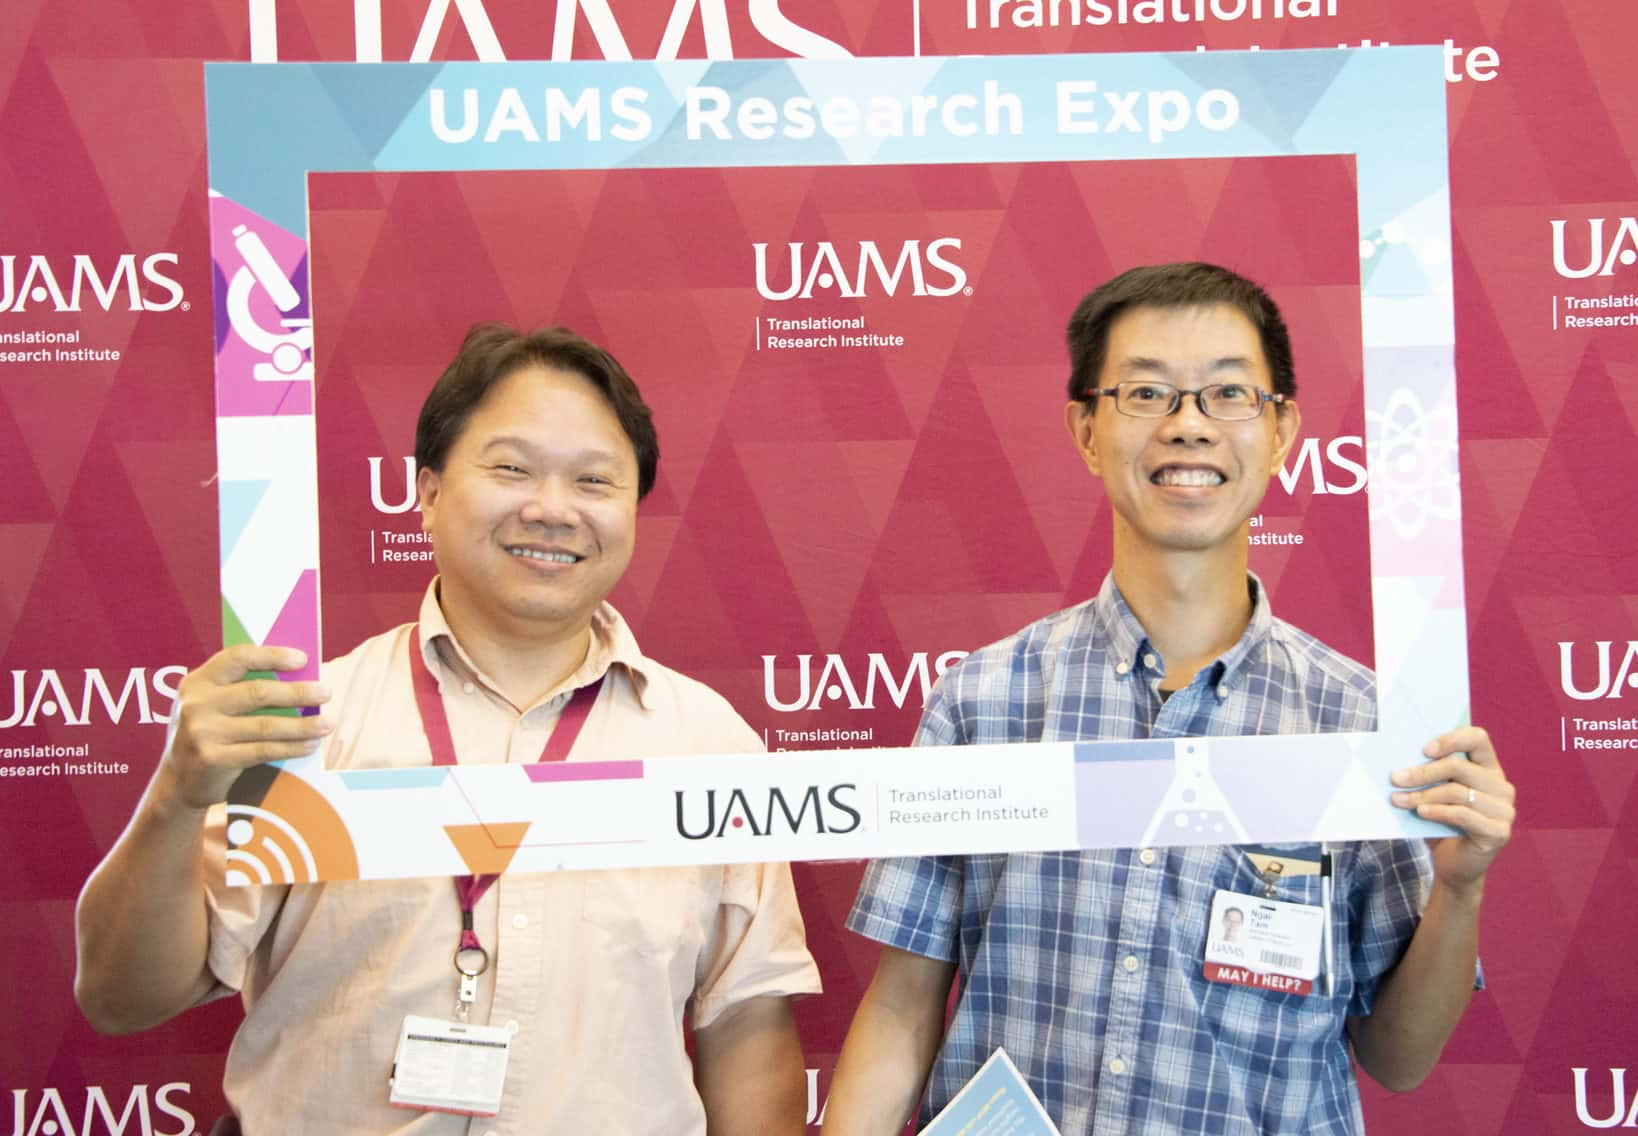 """Yuet-Kin """"Ricky"""" Leung, Ph.D., enjoyed the Research Expo with Nagai C. """"Neville"""" Tam, Ph.D."""